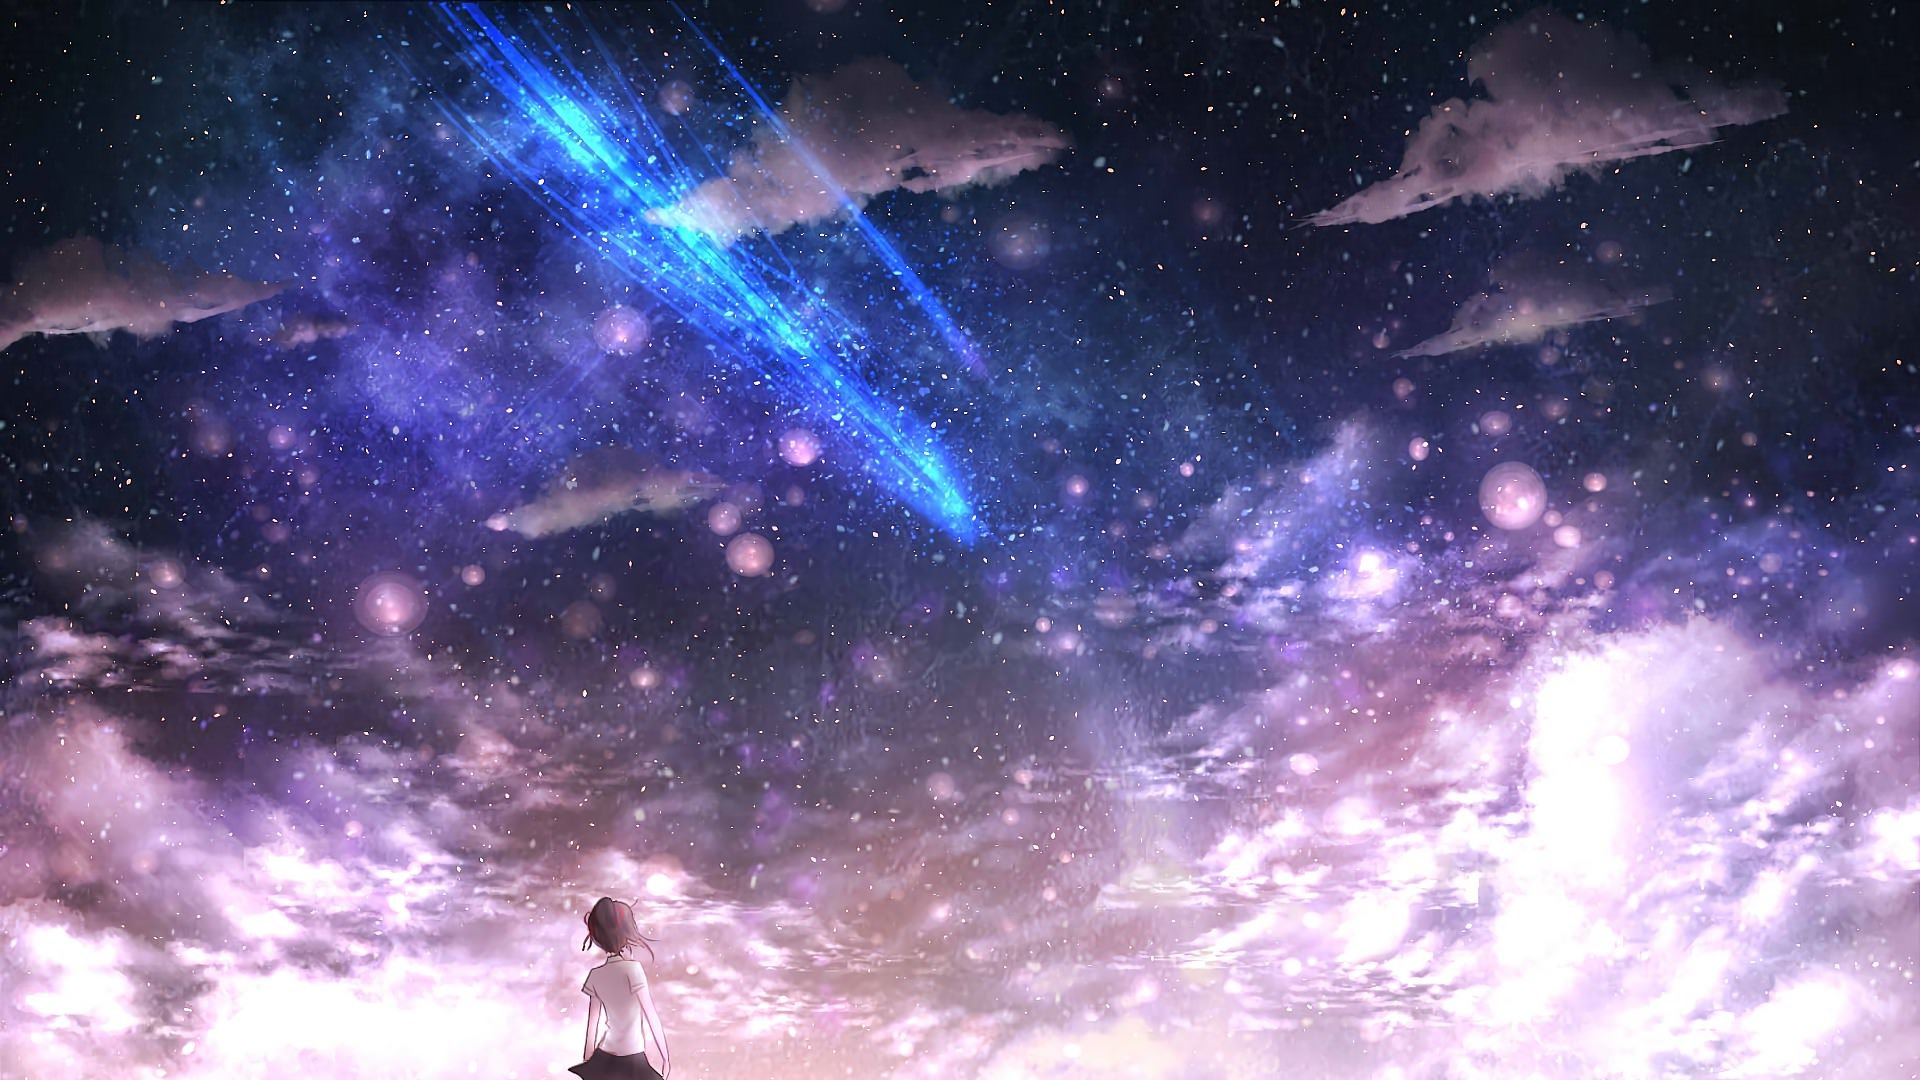 Anime Night Sky: Top Free Blue Comet Backgrounds